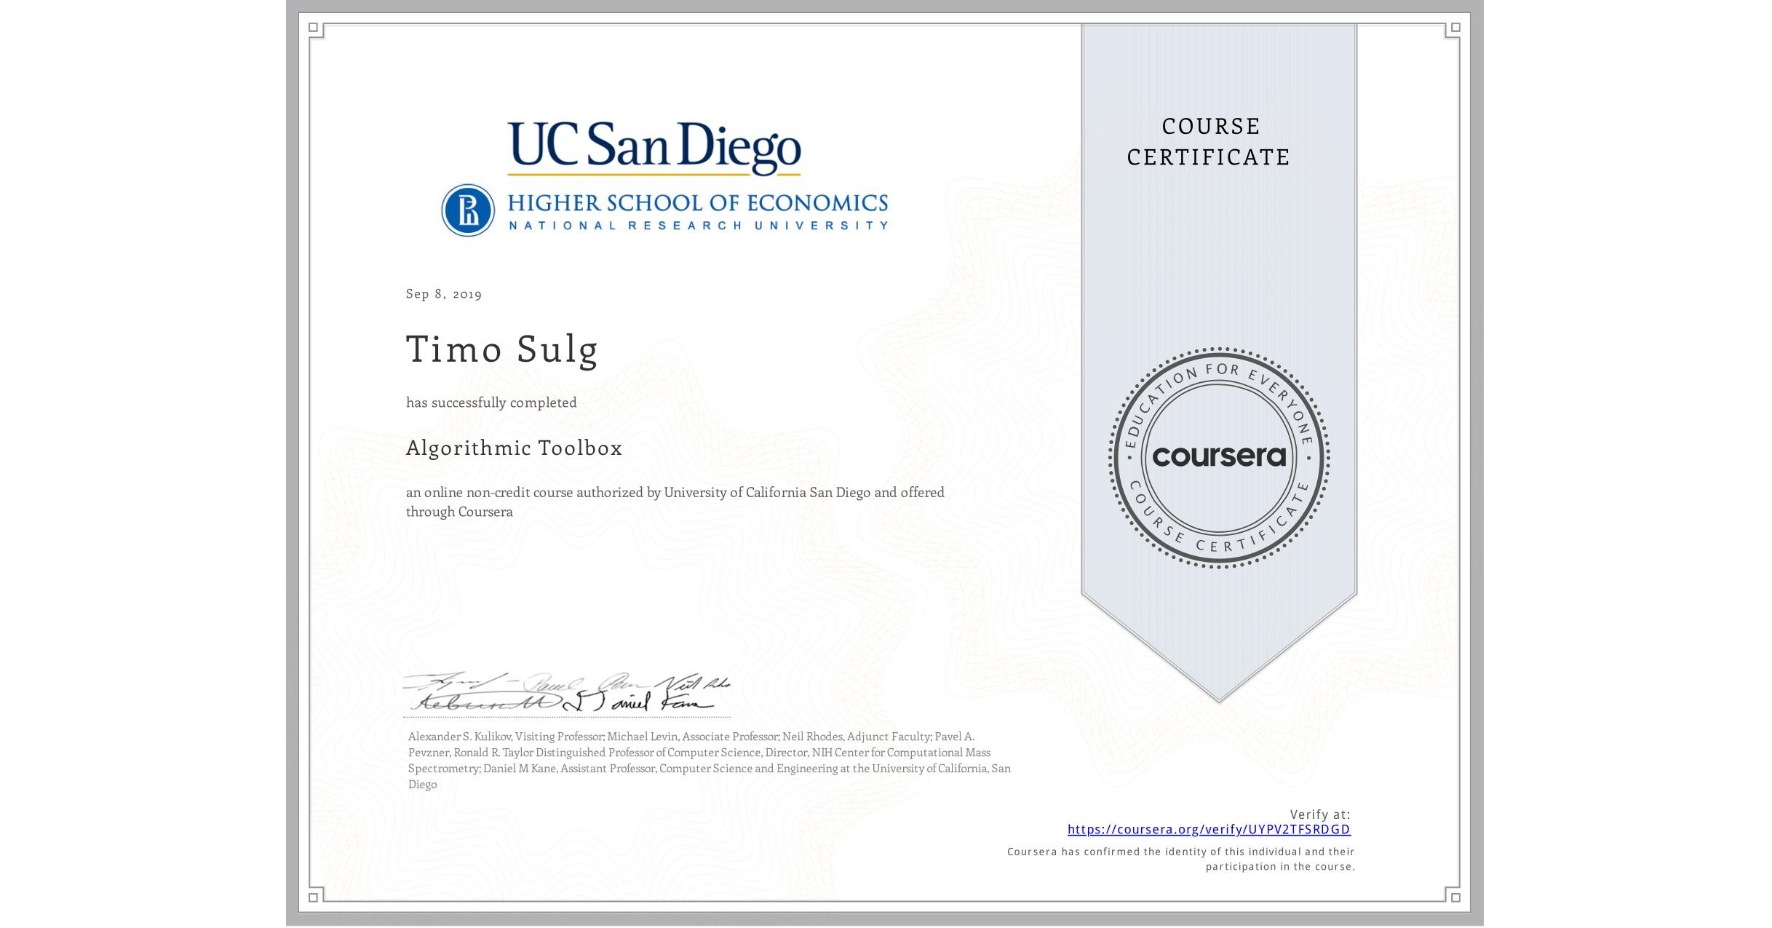 View certificate for Timo Sulg, Algorithmic Toolbox, an online non-credit course authorized by University of California San Diego & HSE University and offered through Coursera